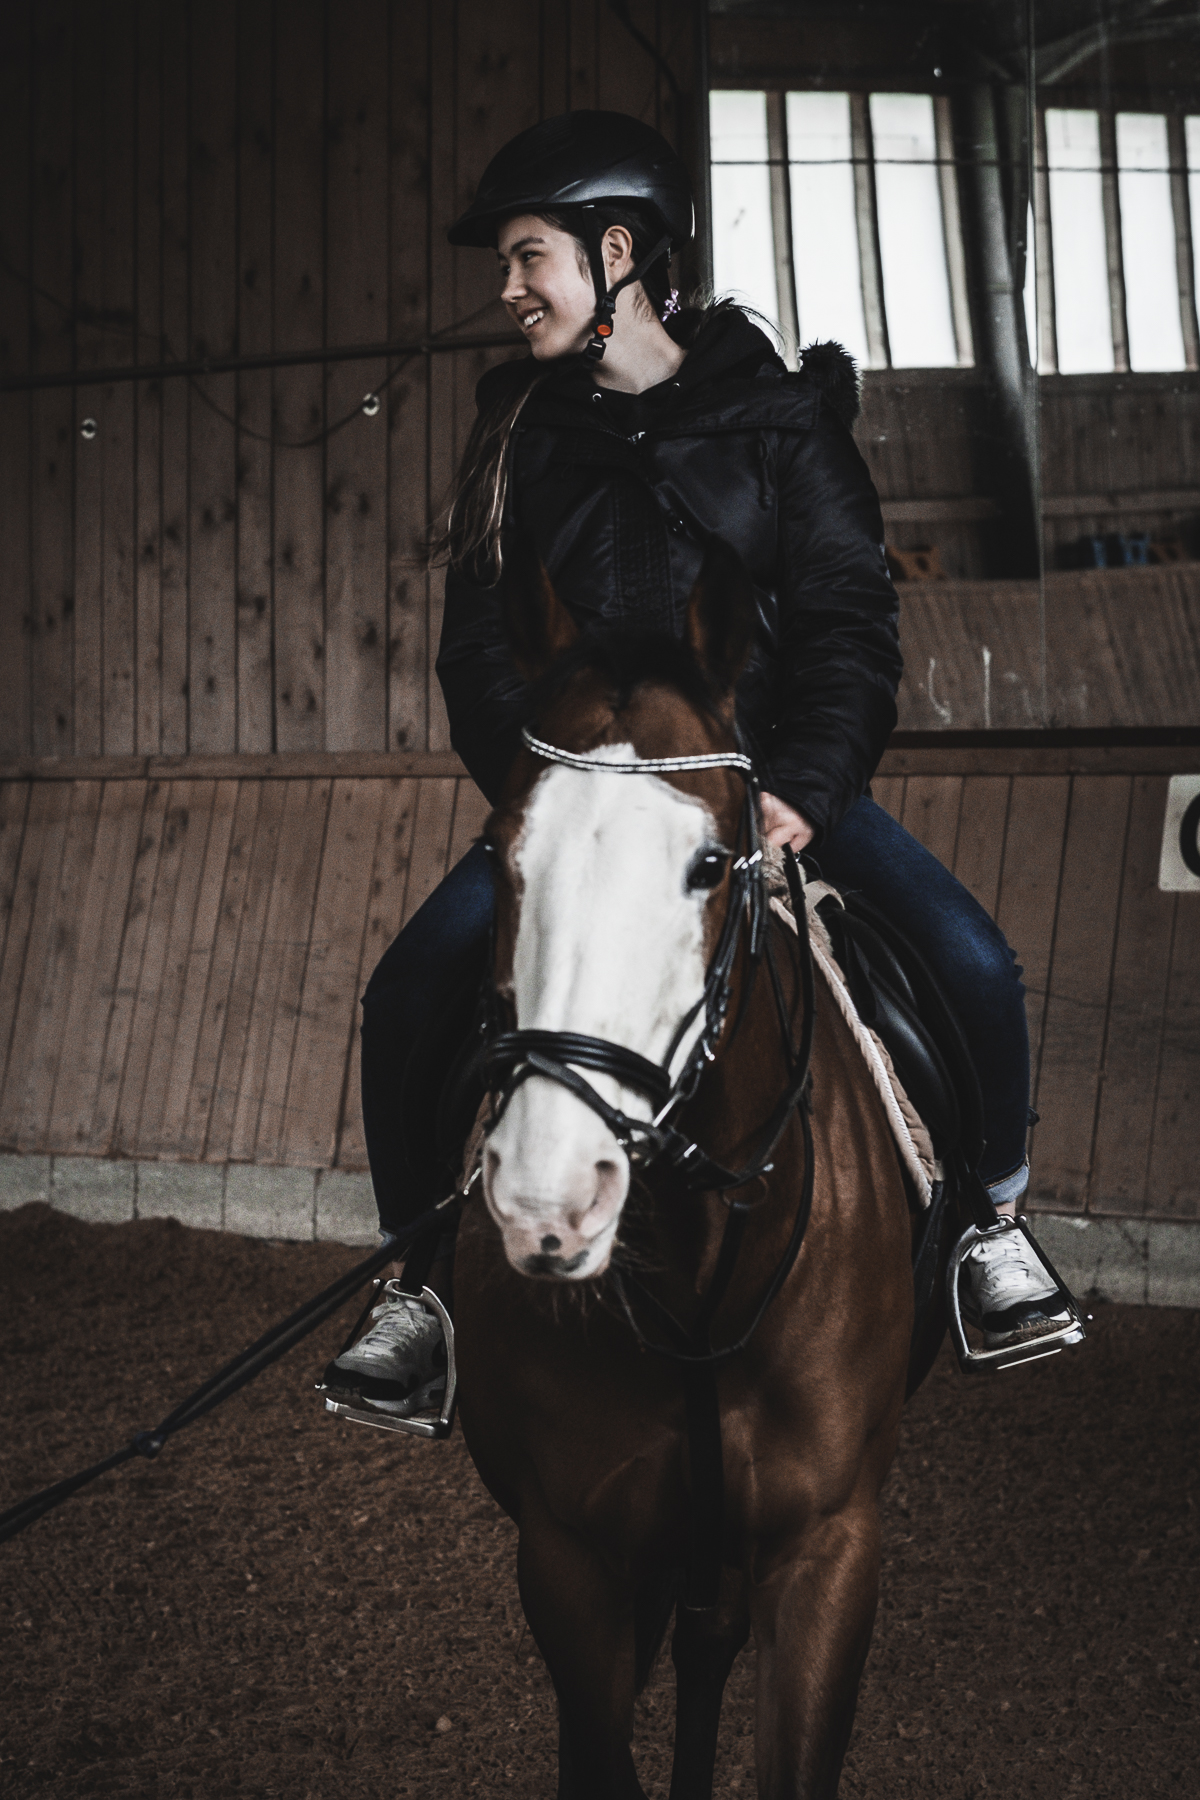 Horse Riding at Bachmair Weissach SPA Hotel Tegernsee - Fujifilm XT3 - Yes! Please Enjoy by Fanning Tseng-14.jpg